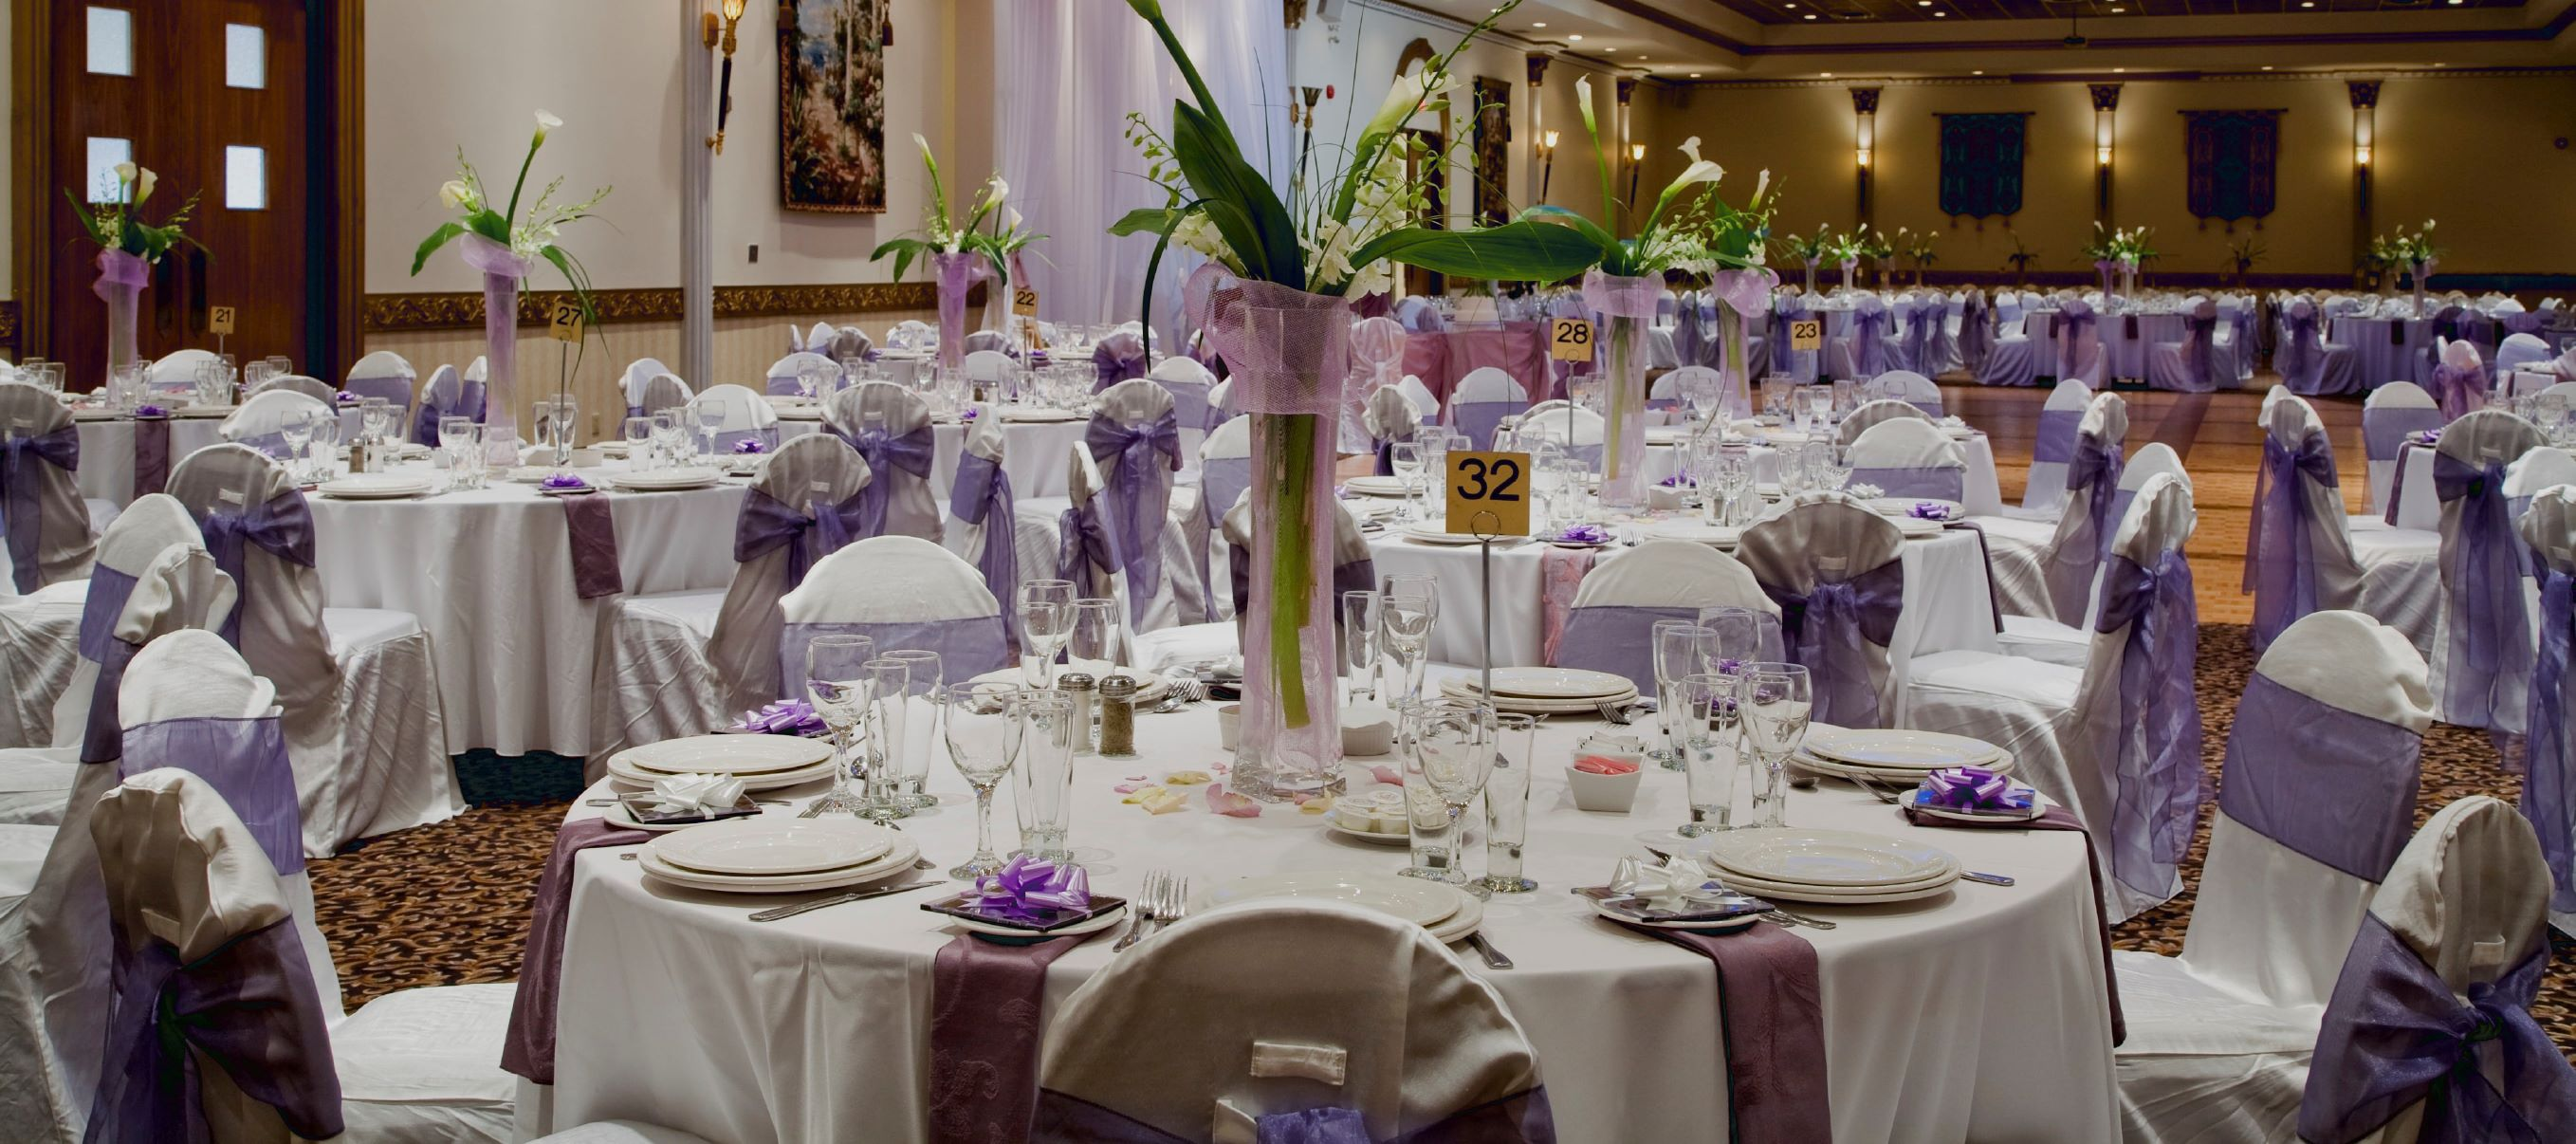 chair covers hire bolton types of garden wedding chairs weddings in manchester balloon decoration cover